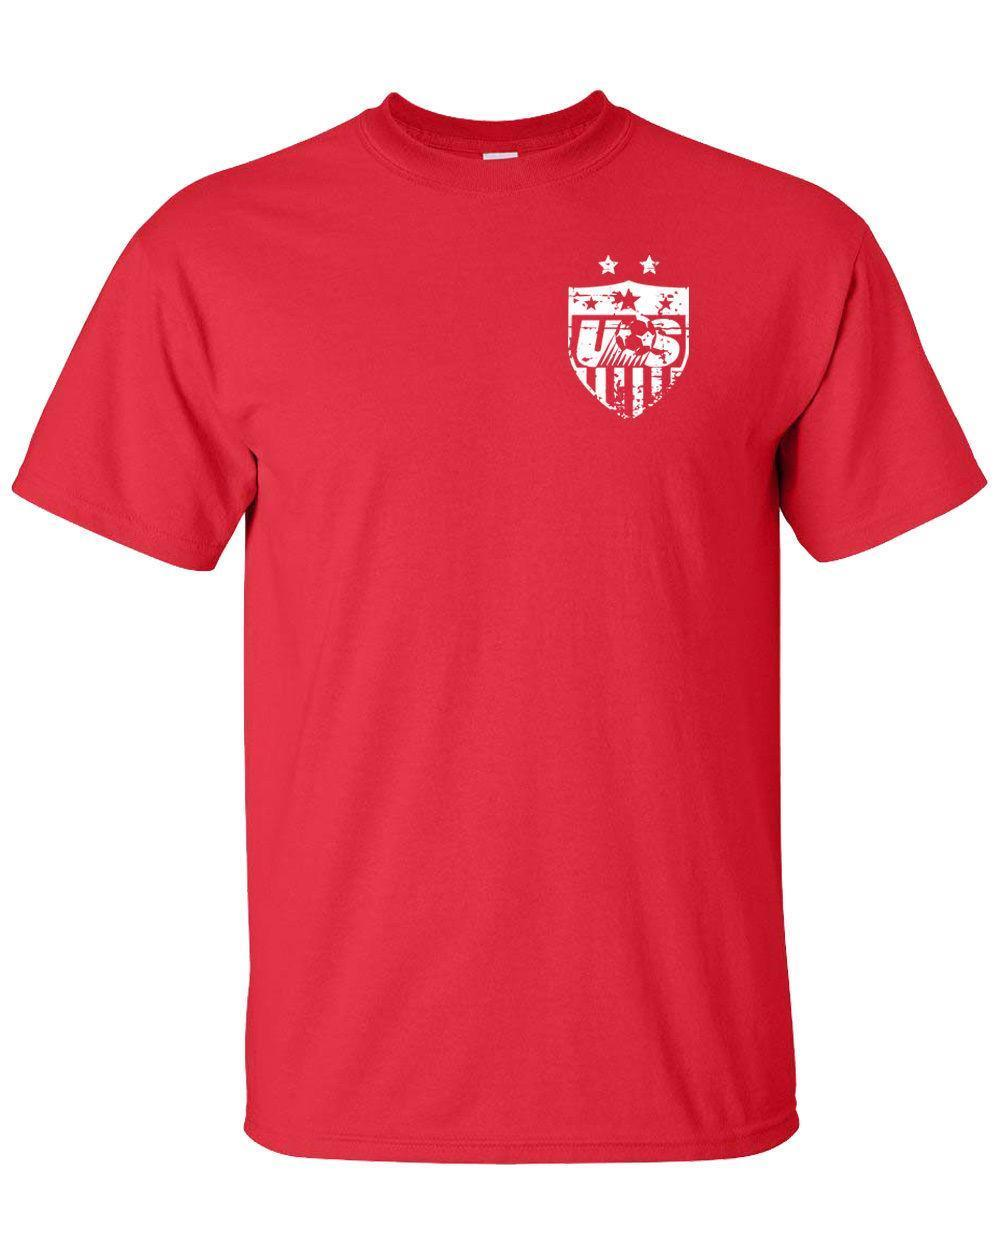 36c36337dc6 ALEX MORGAN United States Women'S Soccer Team 2 Sides MEN'S Tee Shirt 1182 Funny  Tshirt Metal T Shirts From Amesion98, $12.08| DHgate.Com